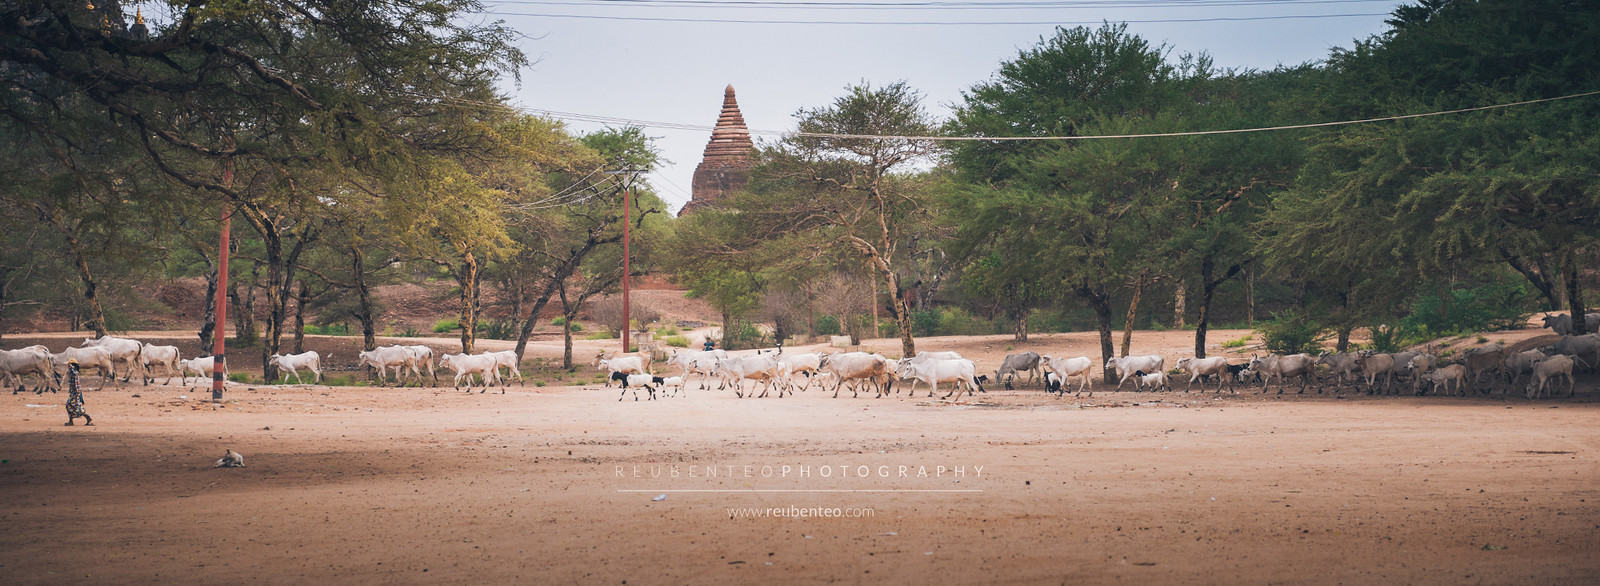 Cattle in Bagan